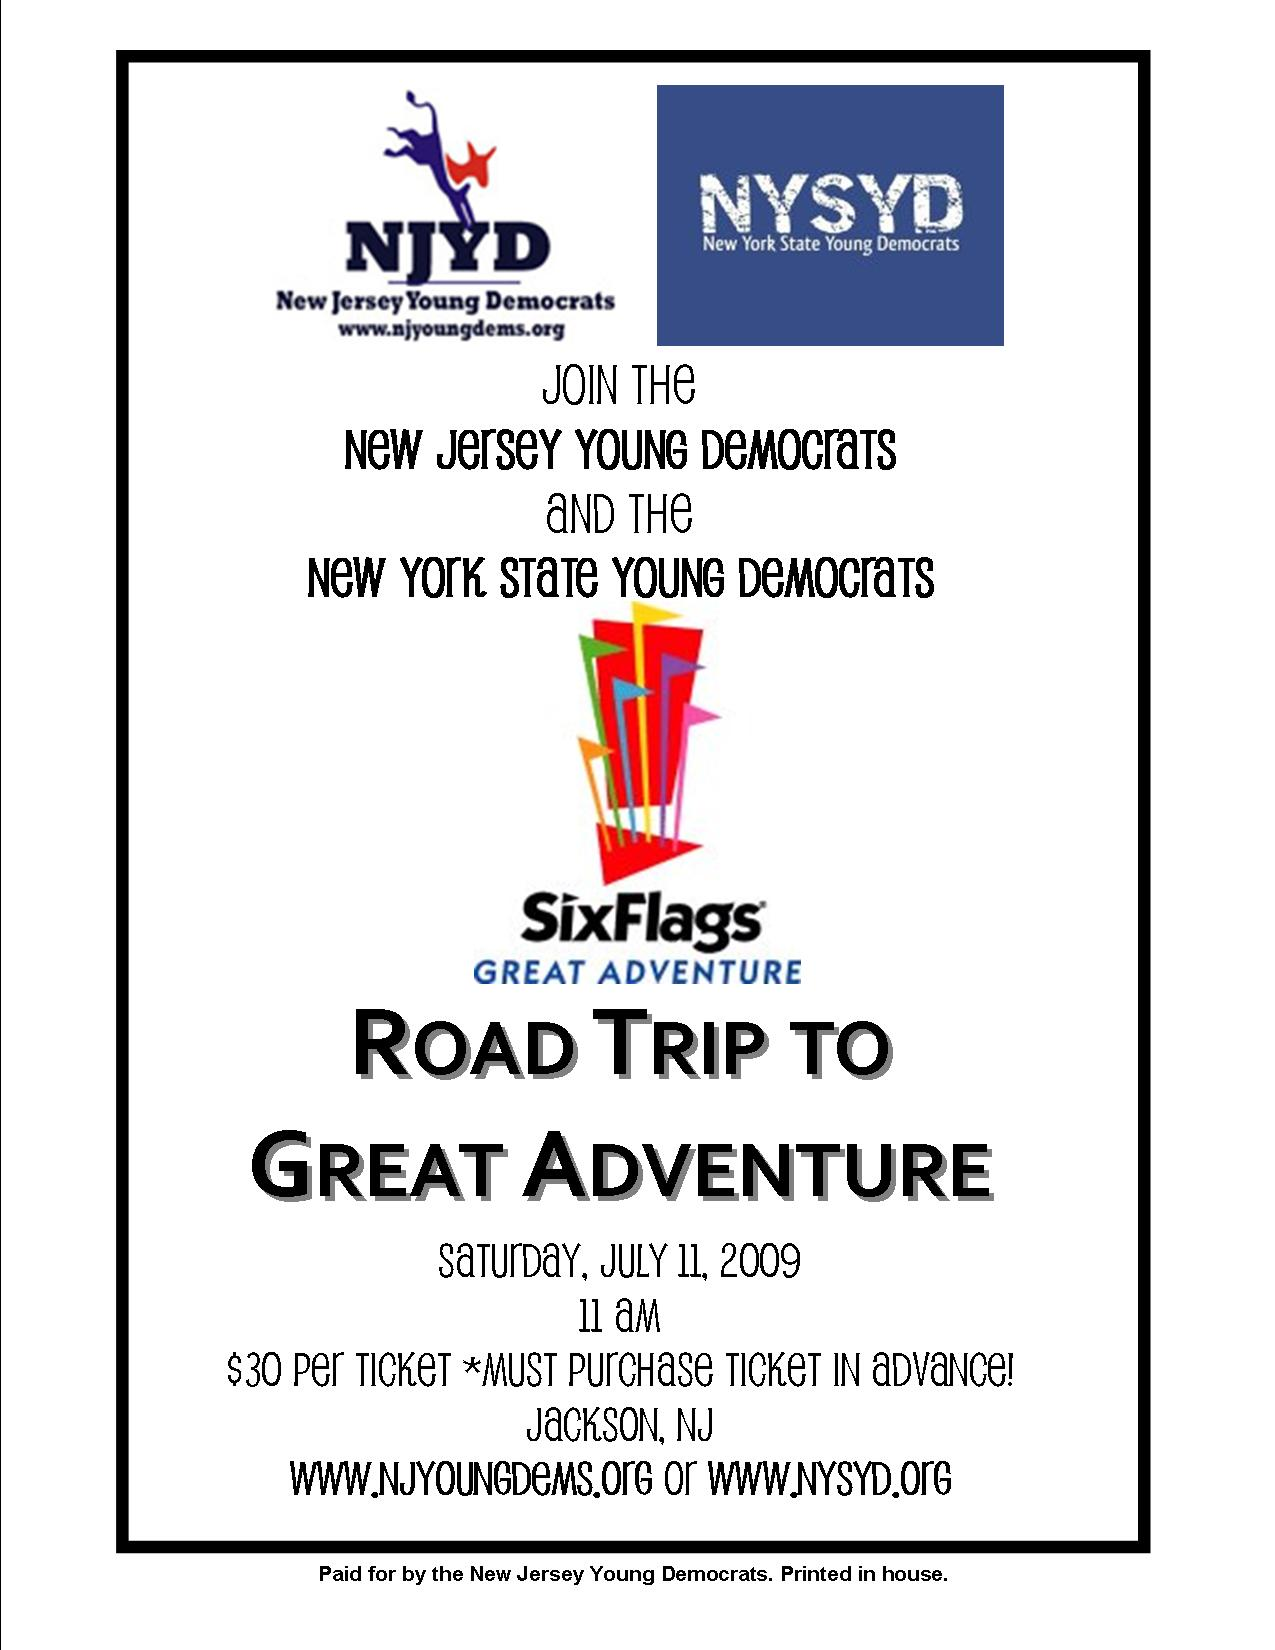 flyer_-_great_adventure_jpeg2